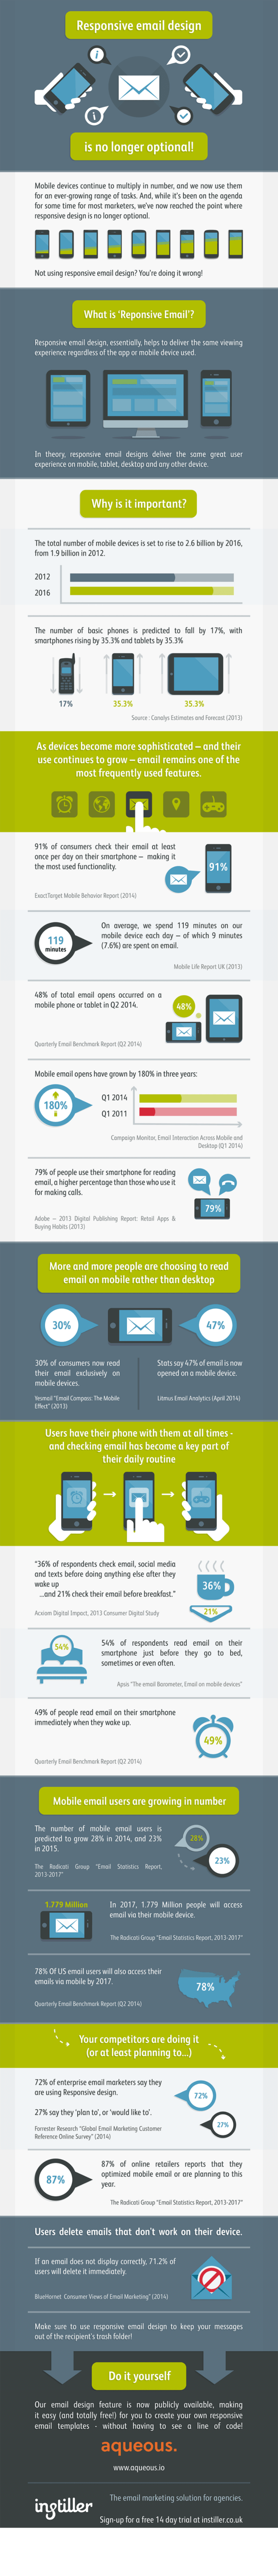 Responsive Mobile Email Design